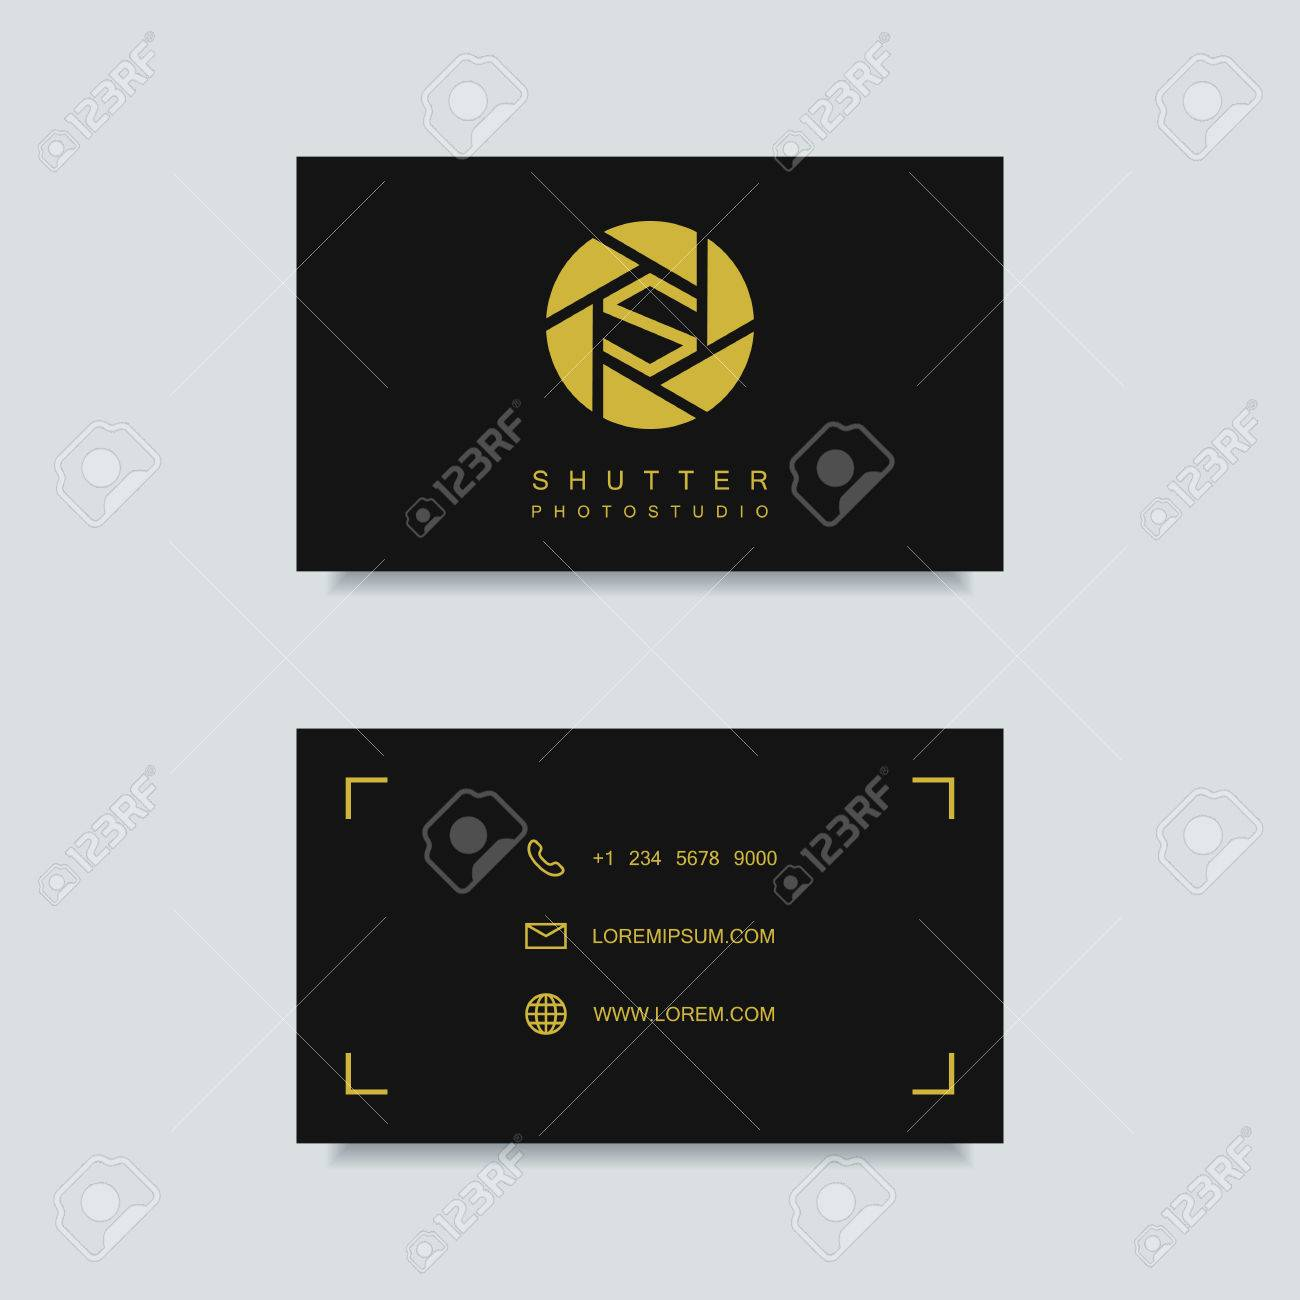 Photography business card template photography emblem photo photography business card template photography emblem photo studio emblem photographer business card colourmoves